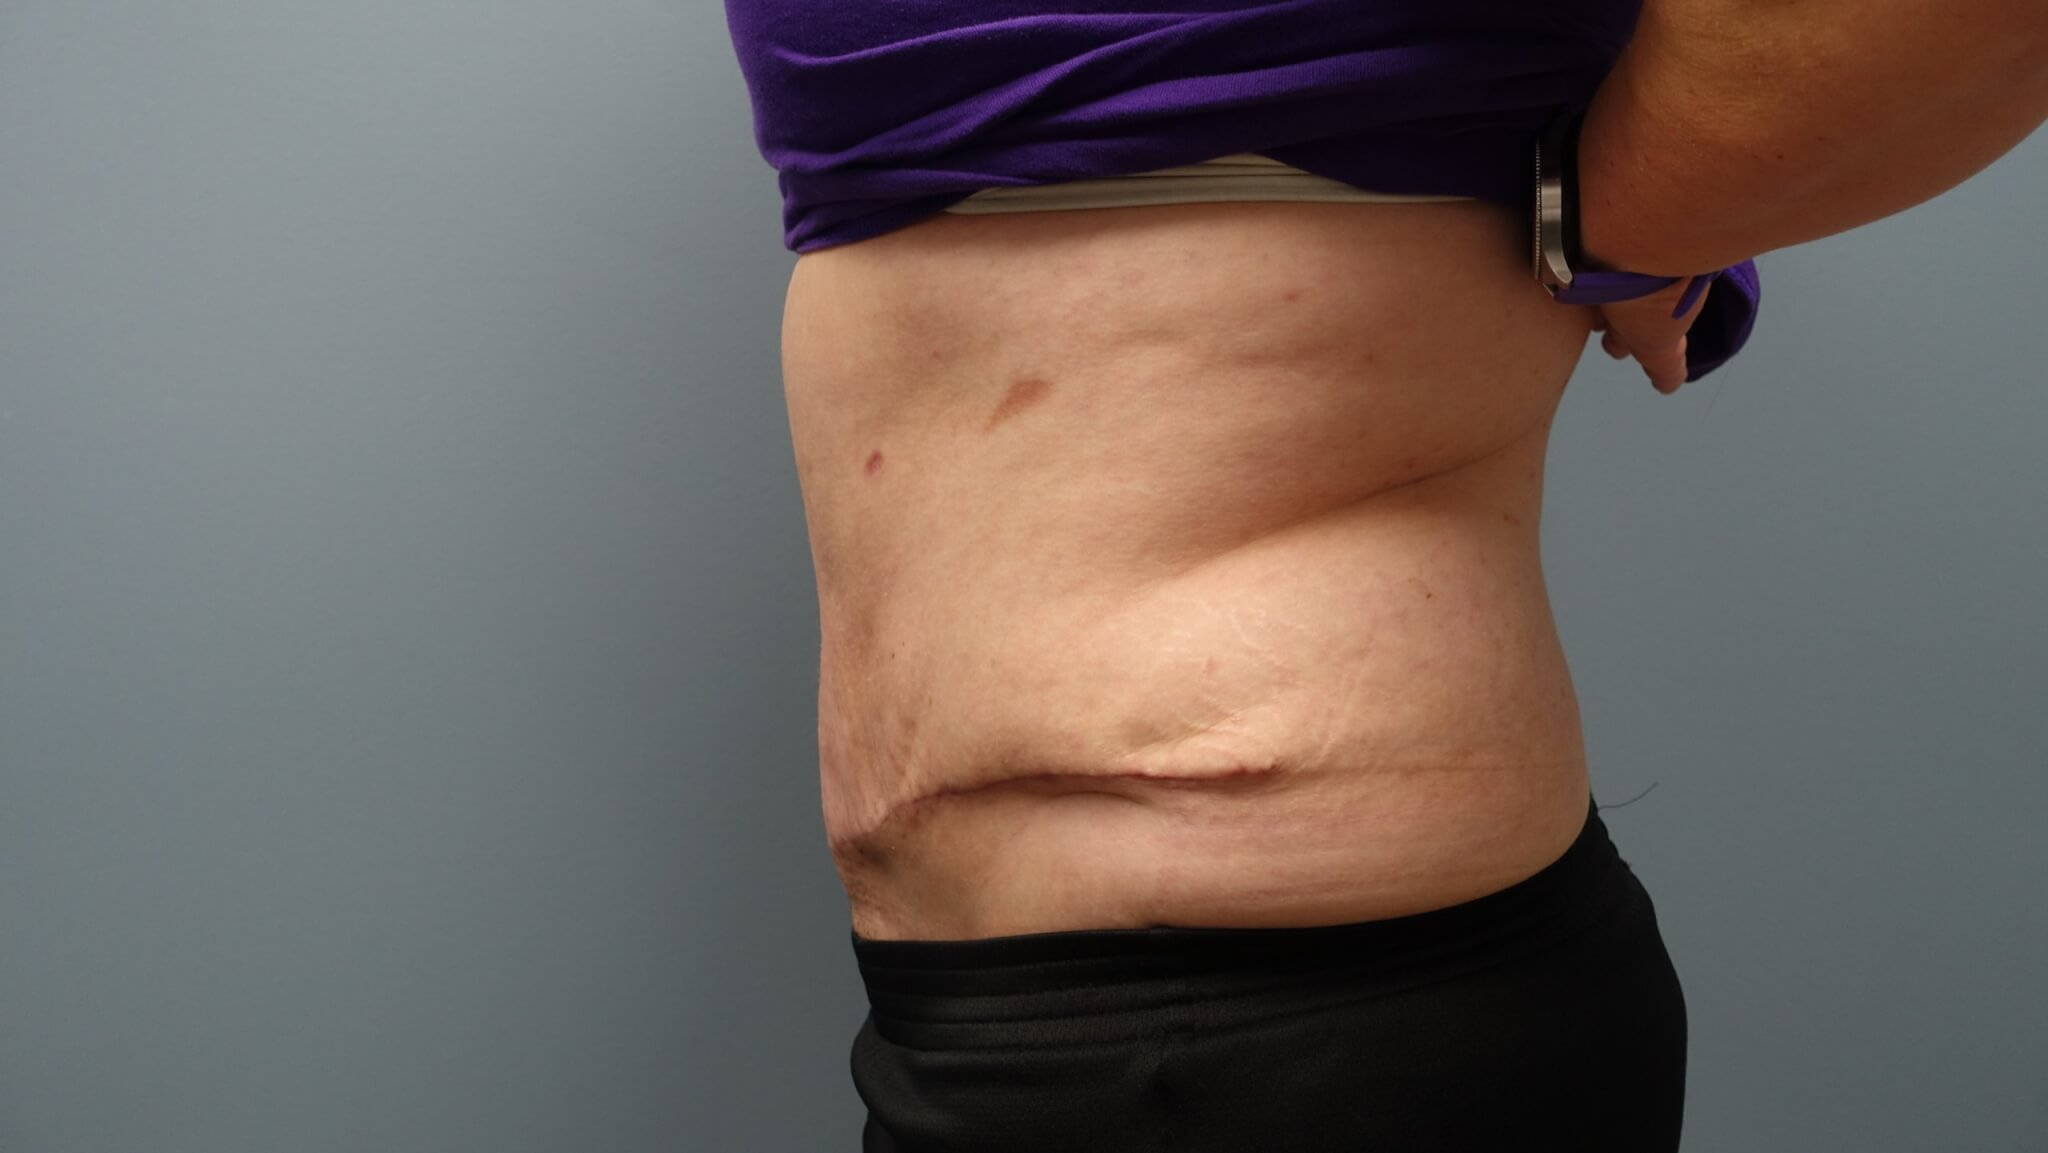 After 6 weeks of Tummy Tuck without Drains, Liposuction, and Muscle Repair - Scar will heal and blend within 12-months